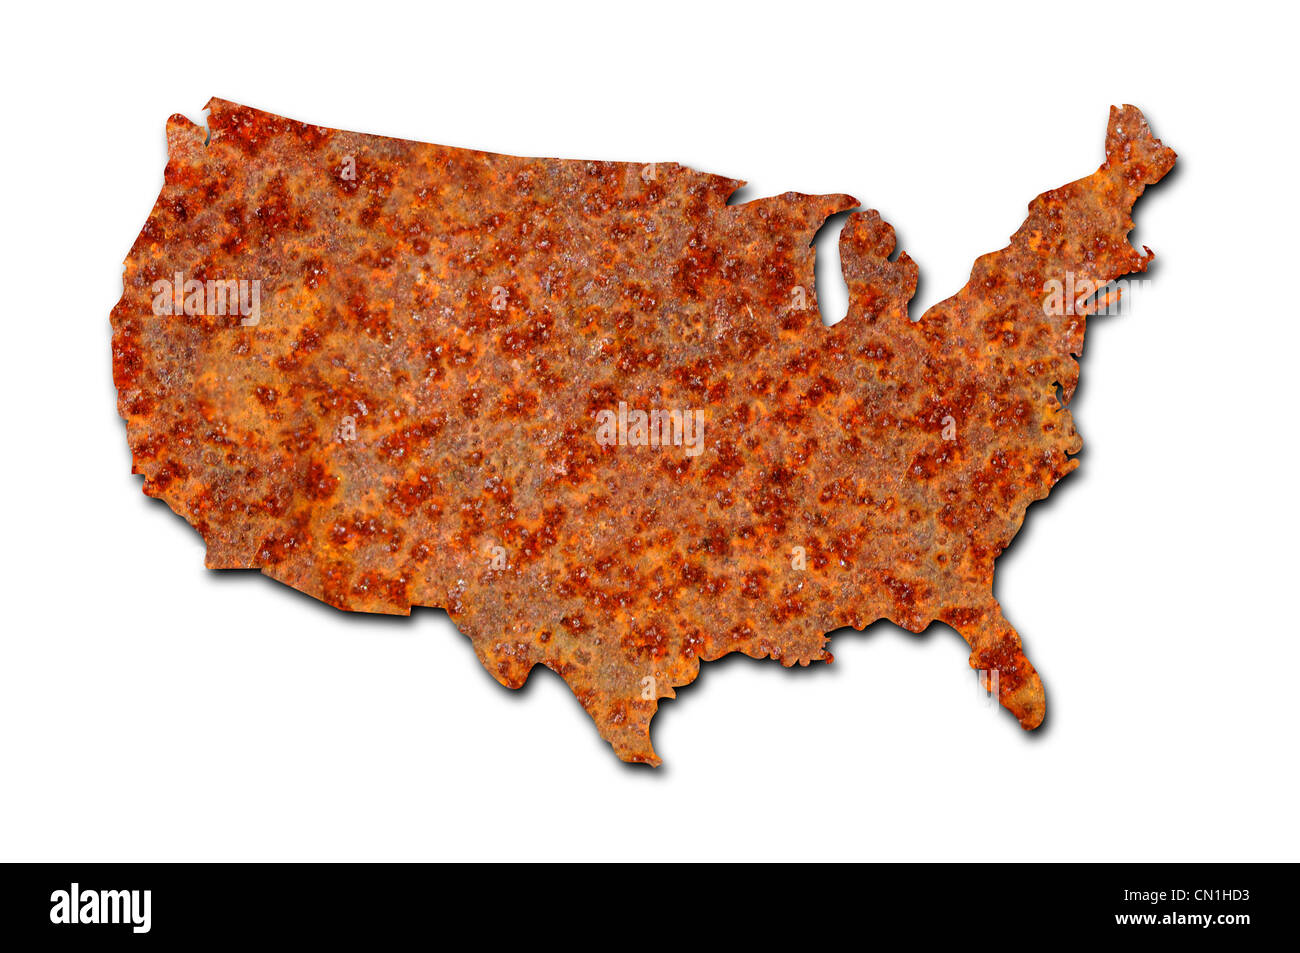 Rusted corroded metal map of the United States on white background - Stock Image